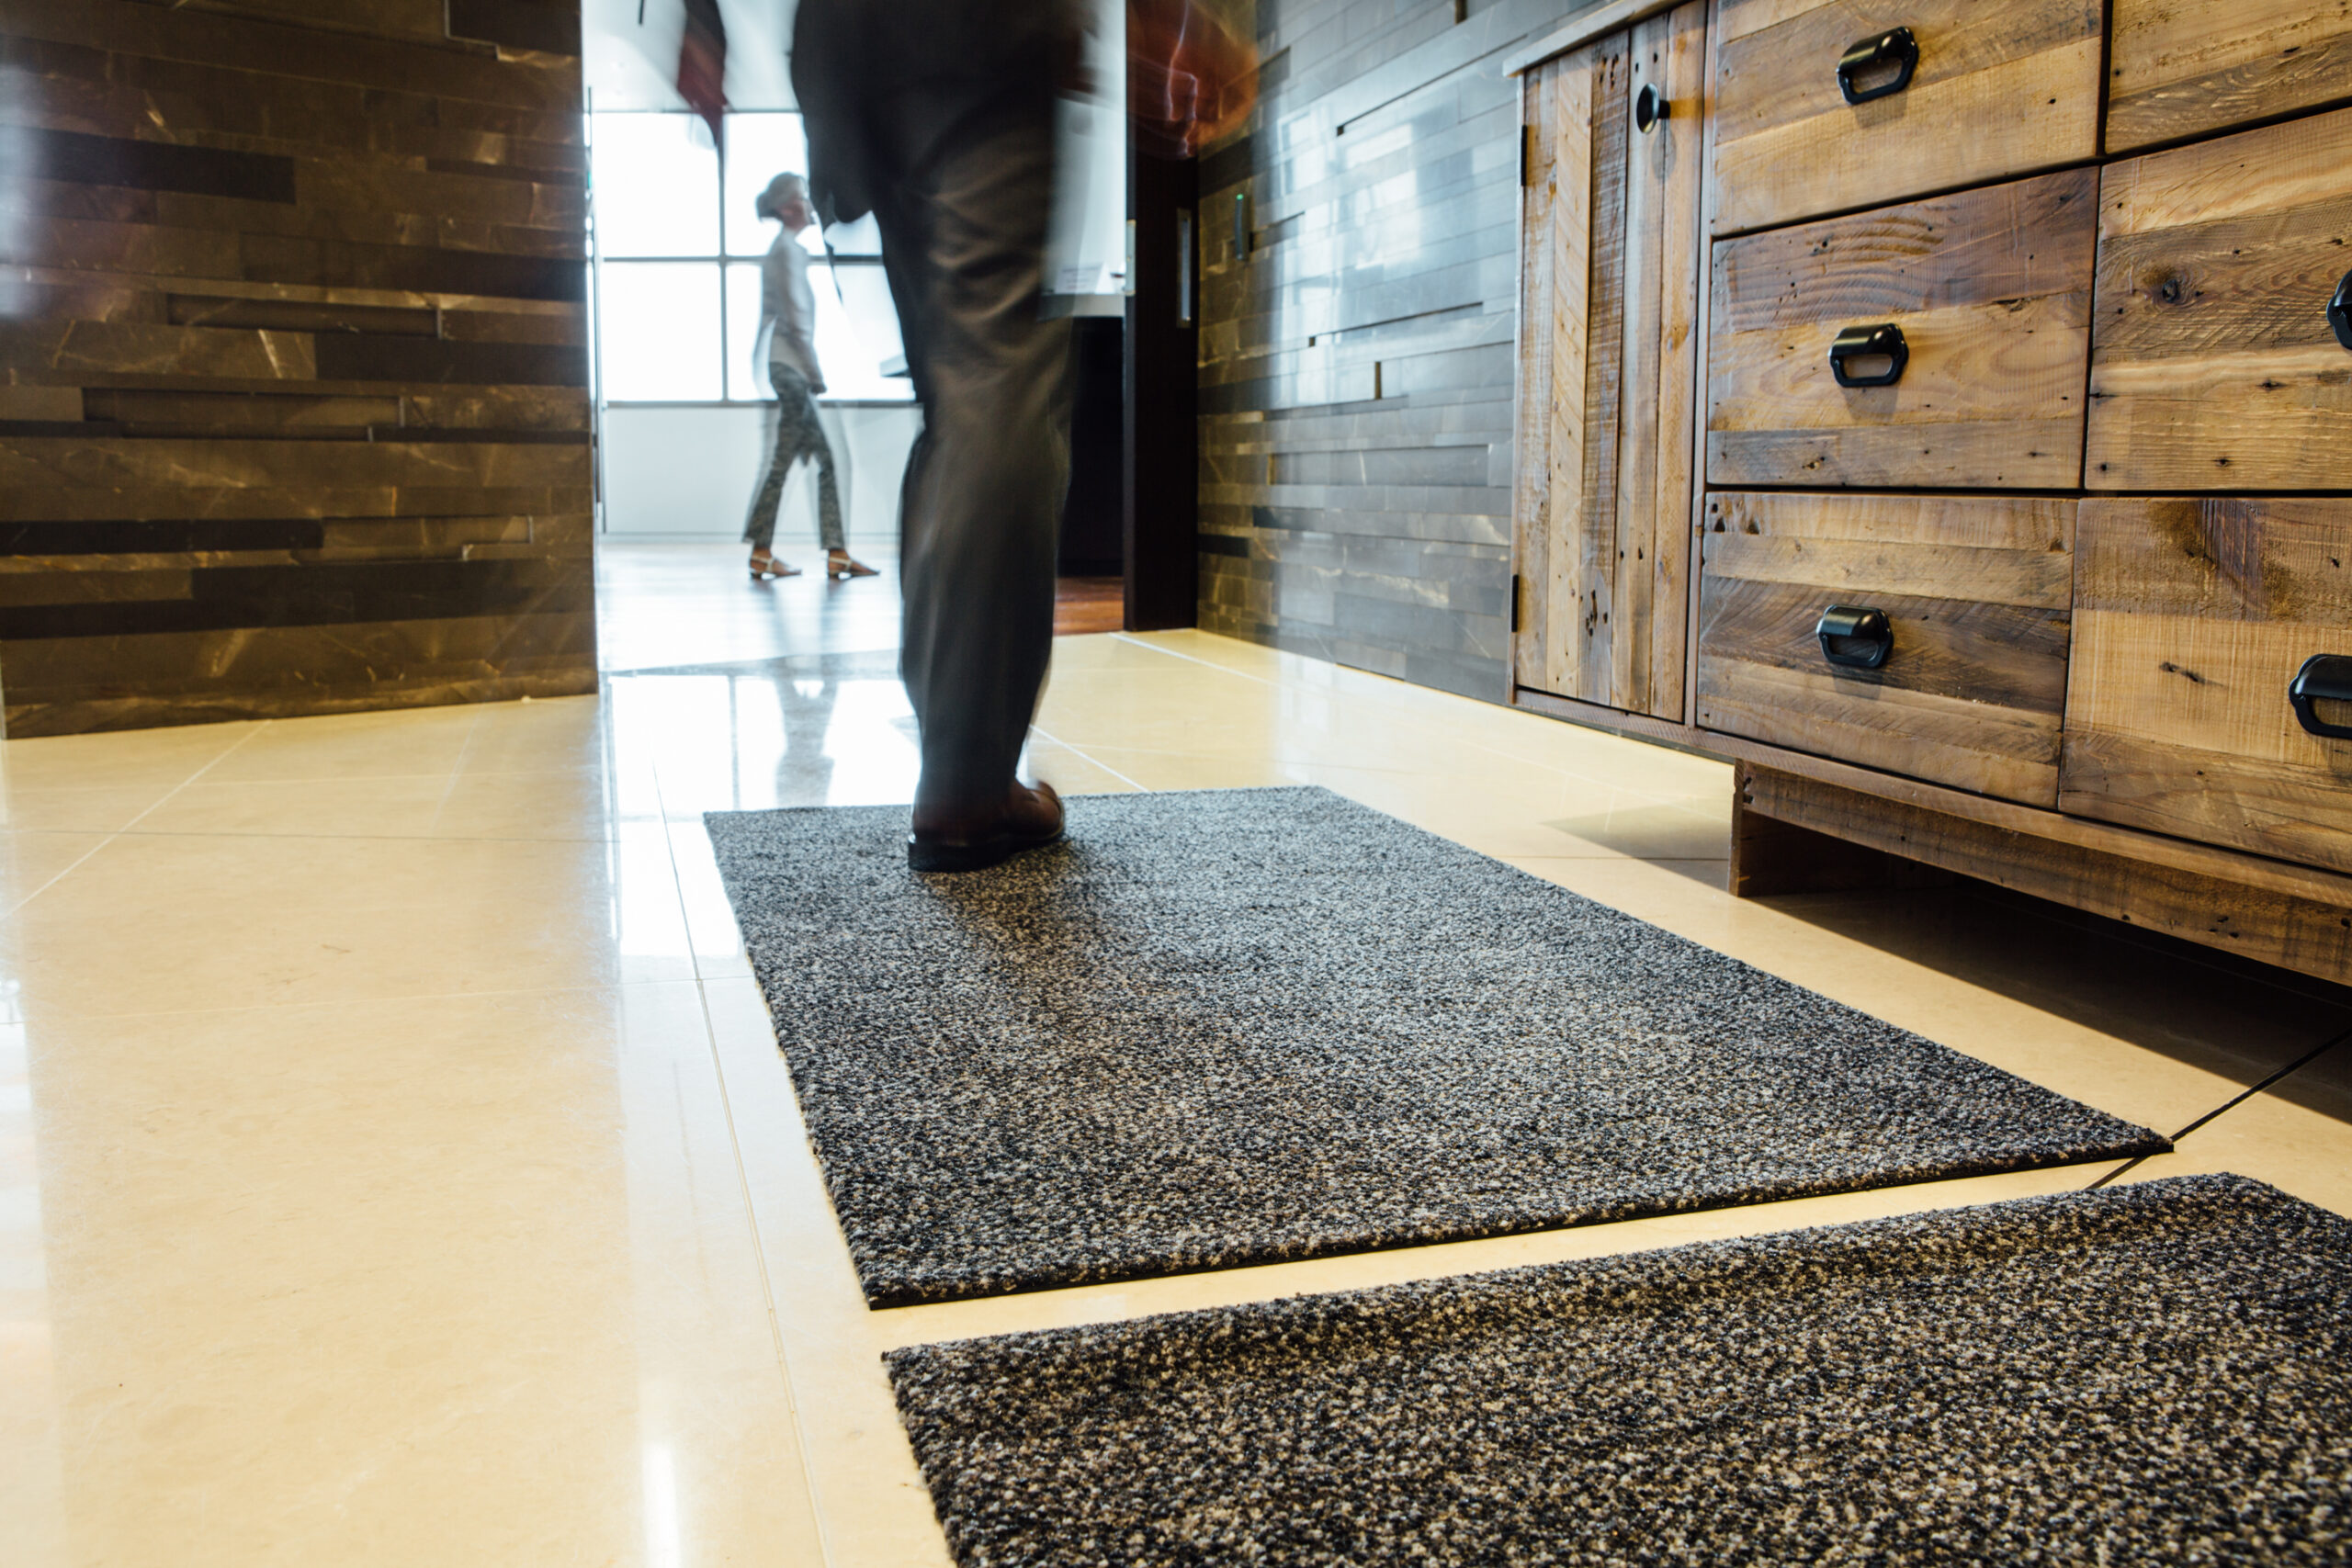 D2 convertible flooring for more stability